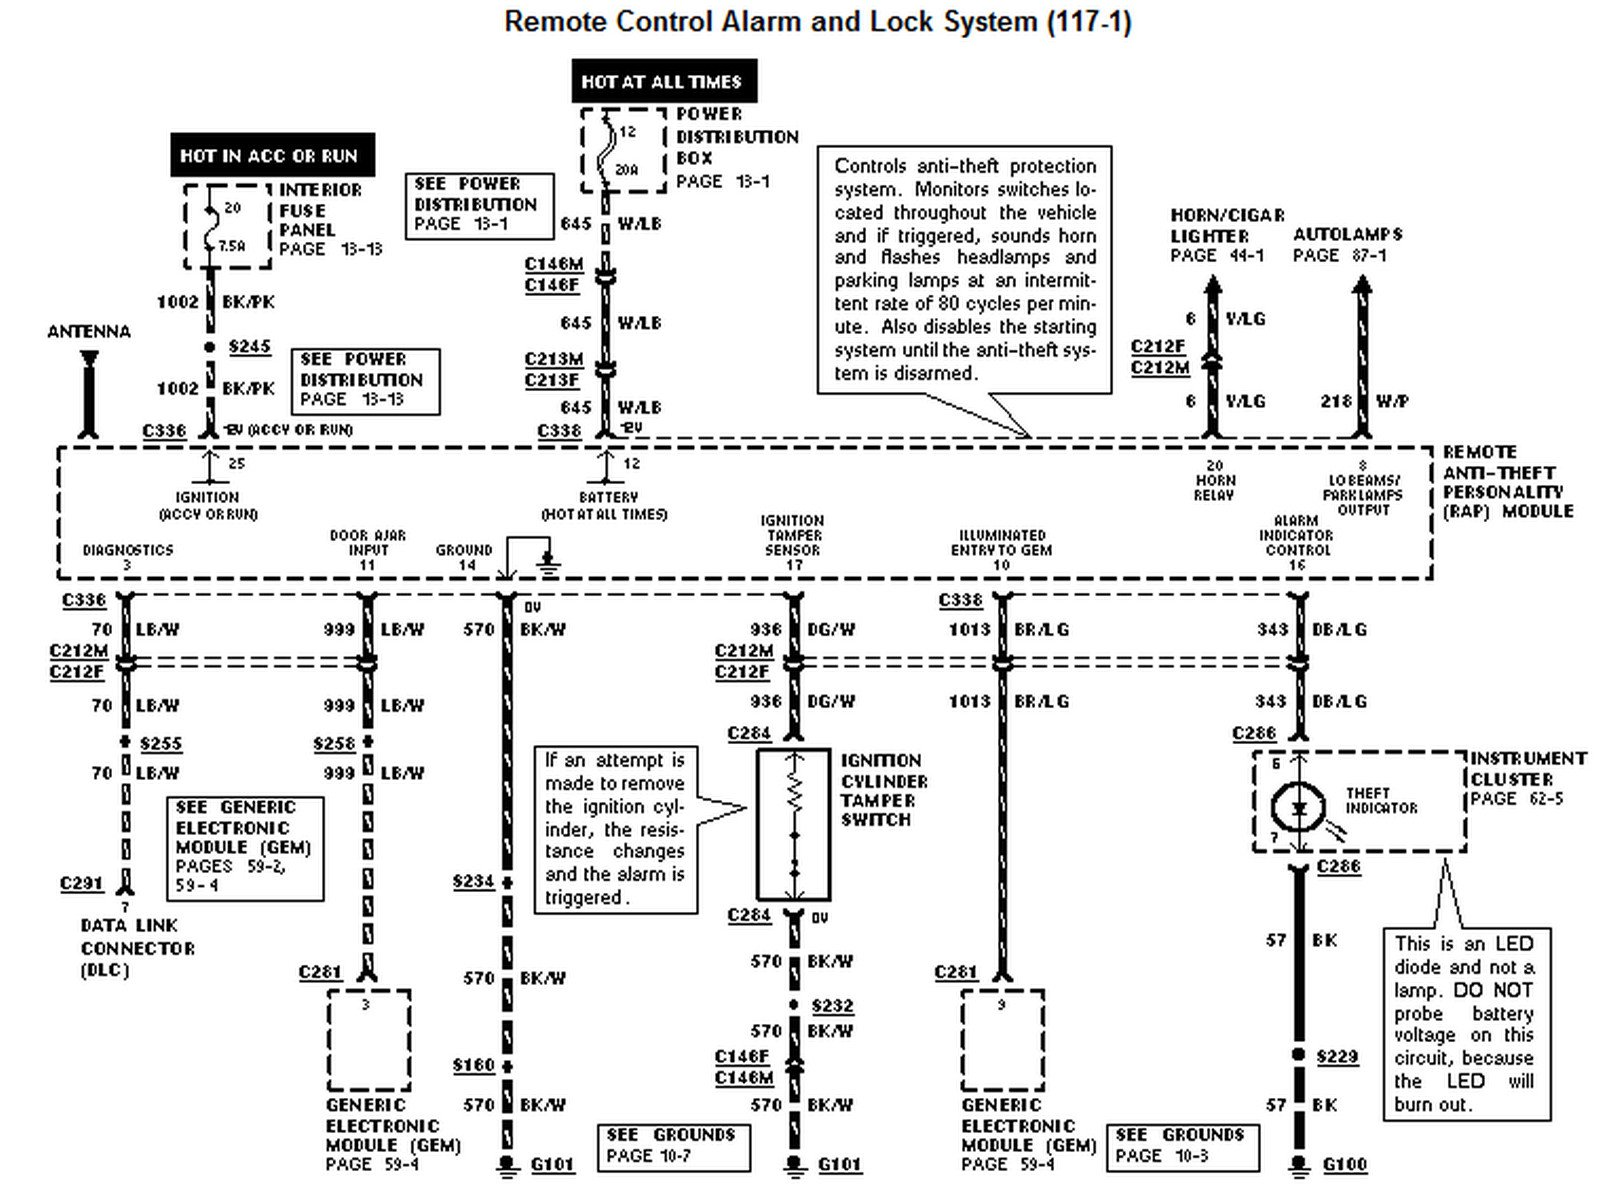 2010 10 30_172916_96_Explorer_Alarm_system_wiring_diagram gem car battery wiring diagram gem electric car battery wiring Ford GEM Wiring-Diagram at mifinder.co